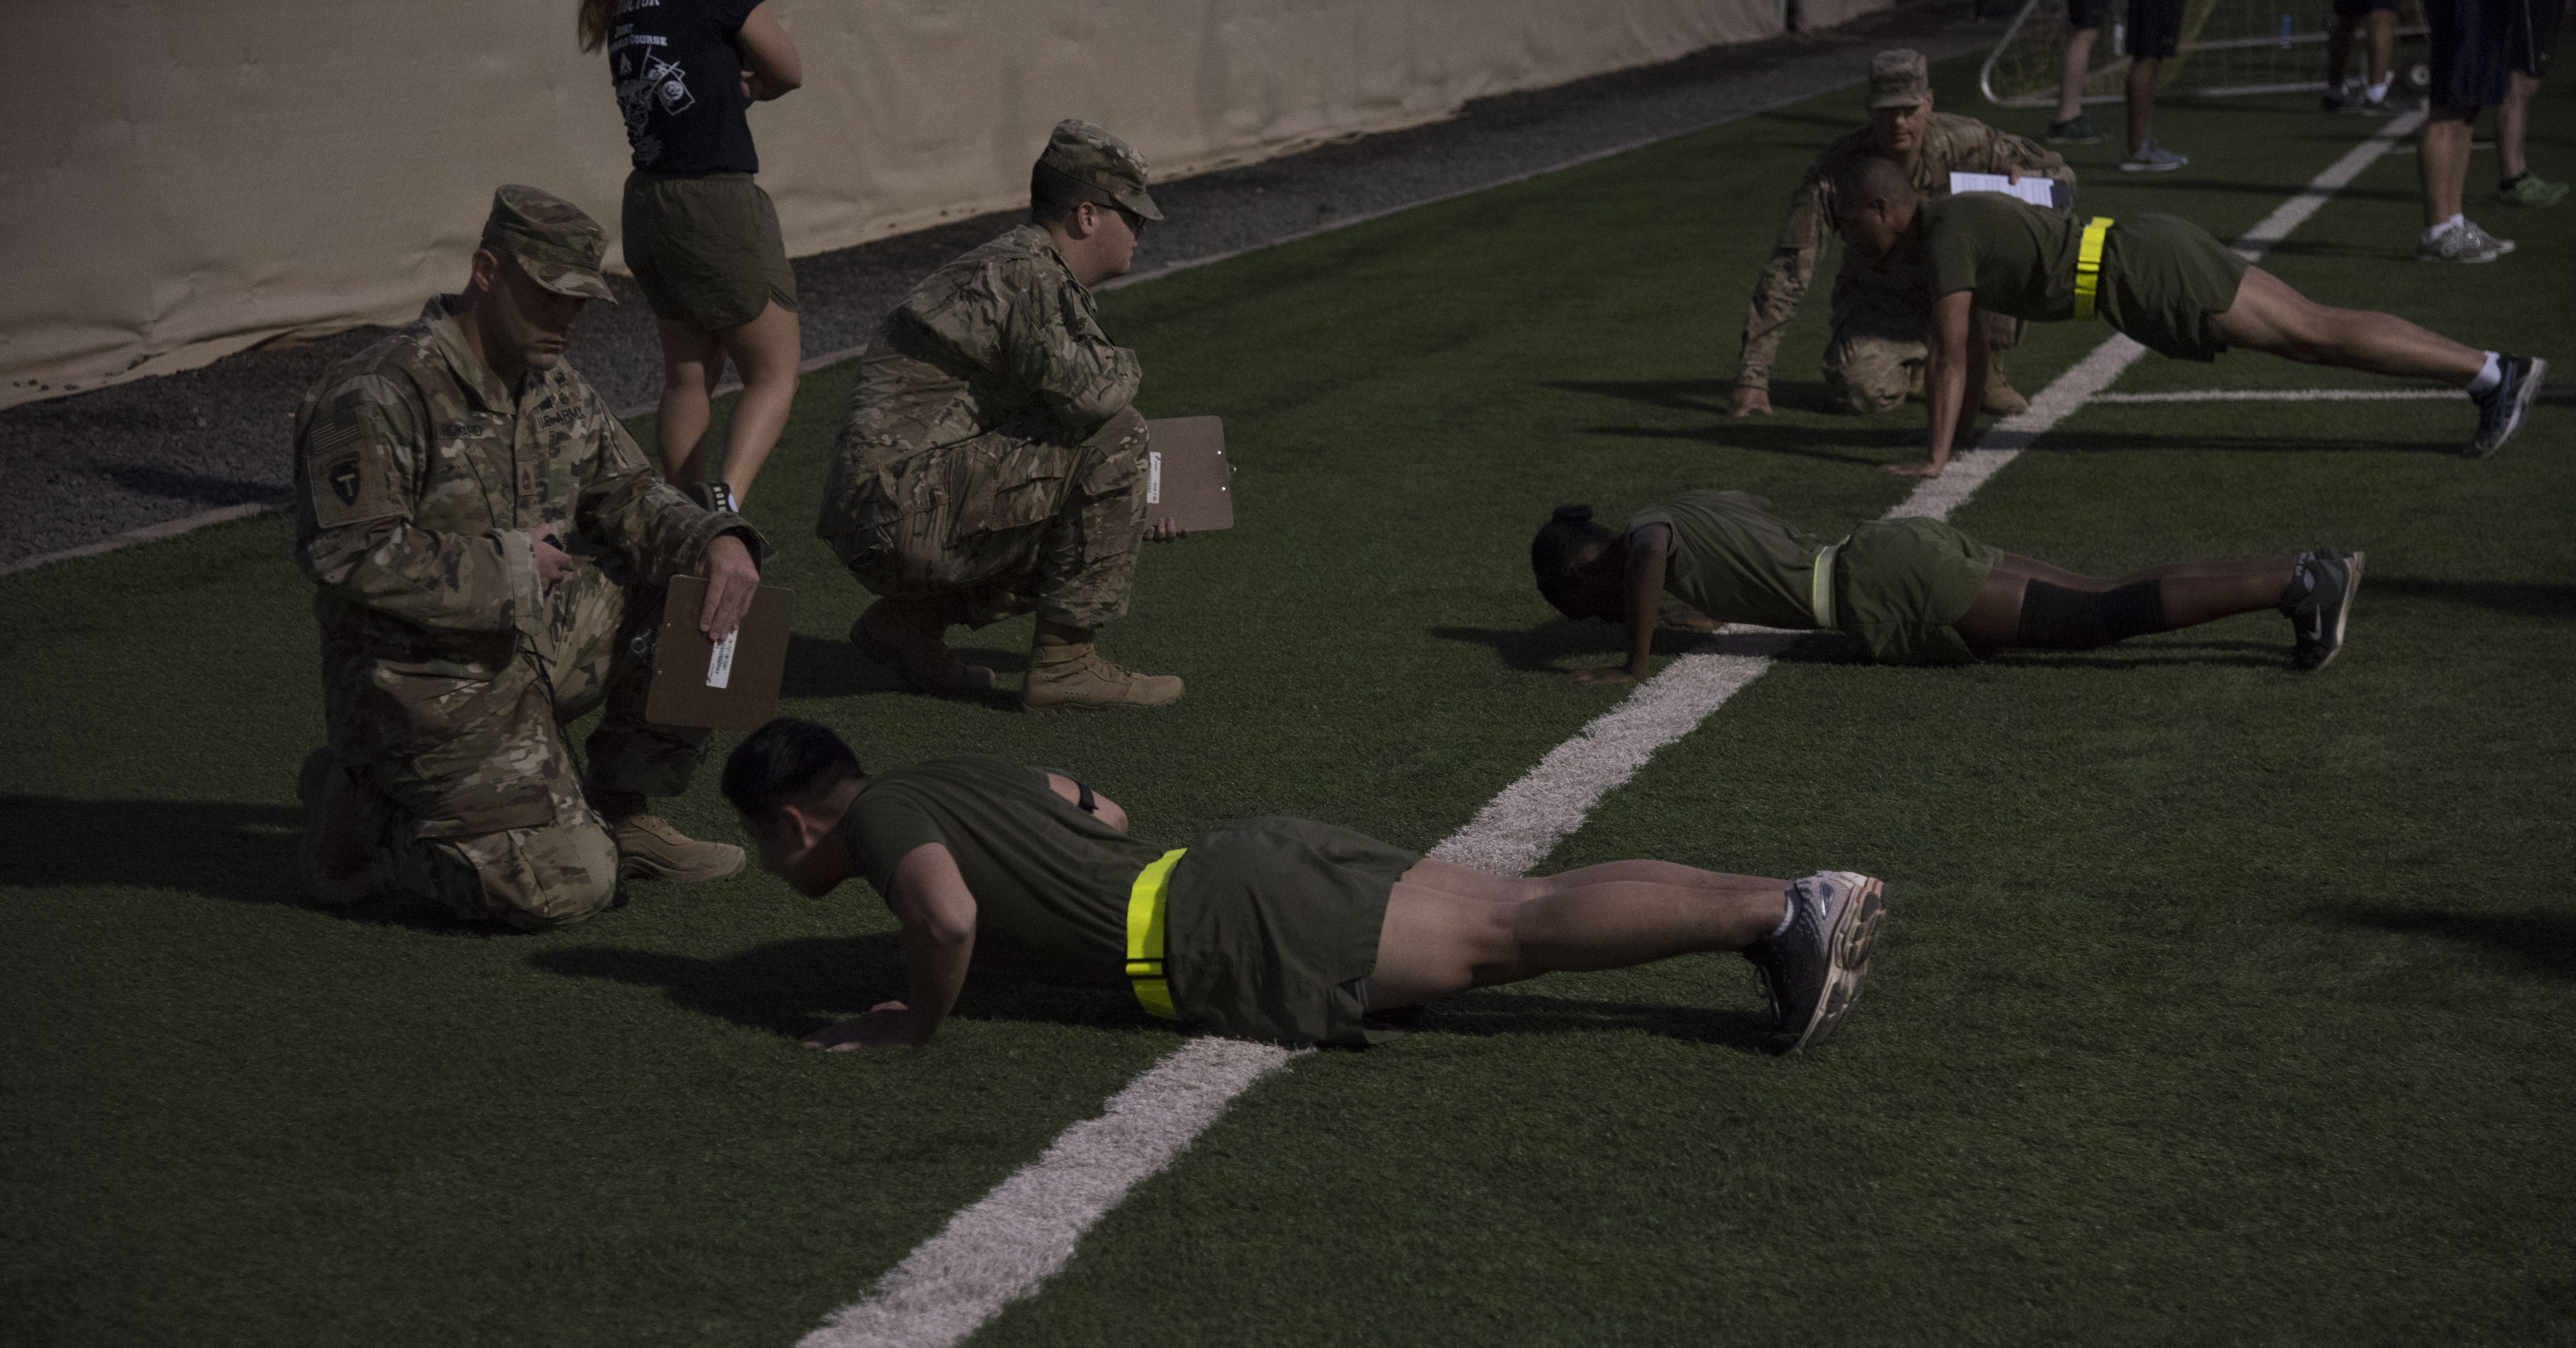 U.S. Army Non-Commissioned Officers administer an Army physical fitness test as part of the Joint Corporals Course hosted by Combined Joint Task Force – Horn of Africa at Camp Lemonnier, Jan. 13, 2018. The Joint Corporals Course is designed to provide junior service members with the knowledge and skills necessary to assume leadership roles of greater responsibility as a non-commissioned officer, as well as strengthen bonds between participating militaries. (U.S. Air National Guard photo by Staff Sgt. Allyson L. Manners)